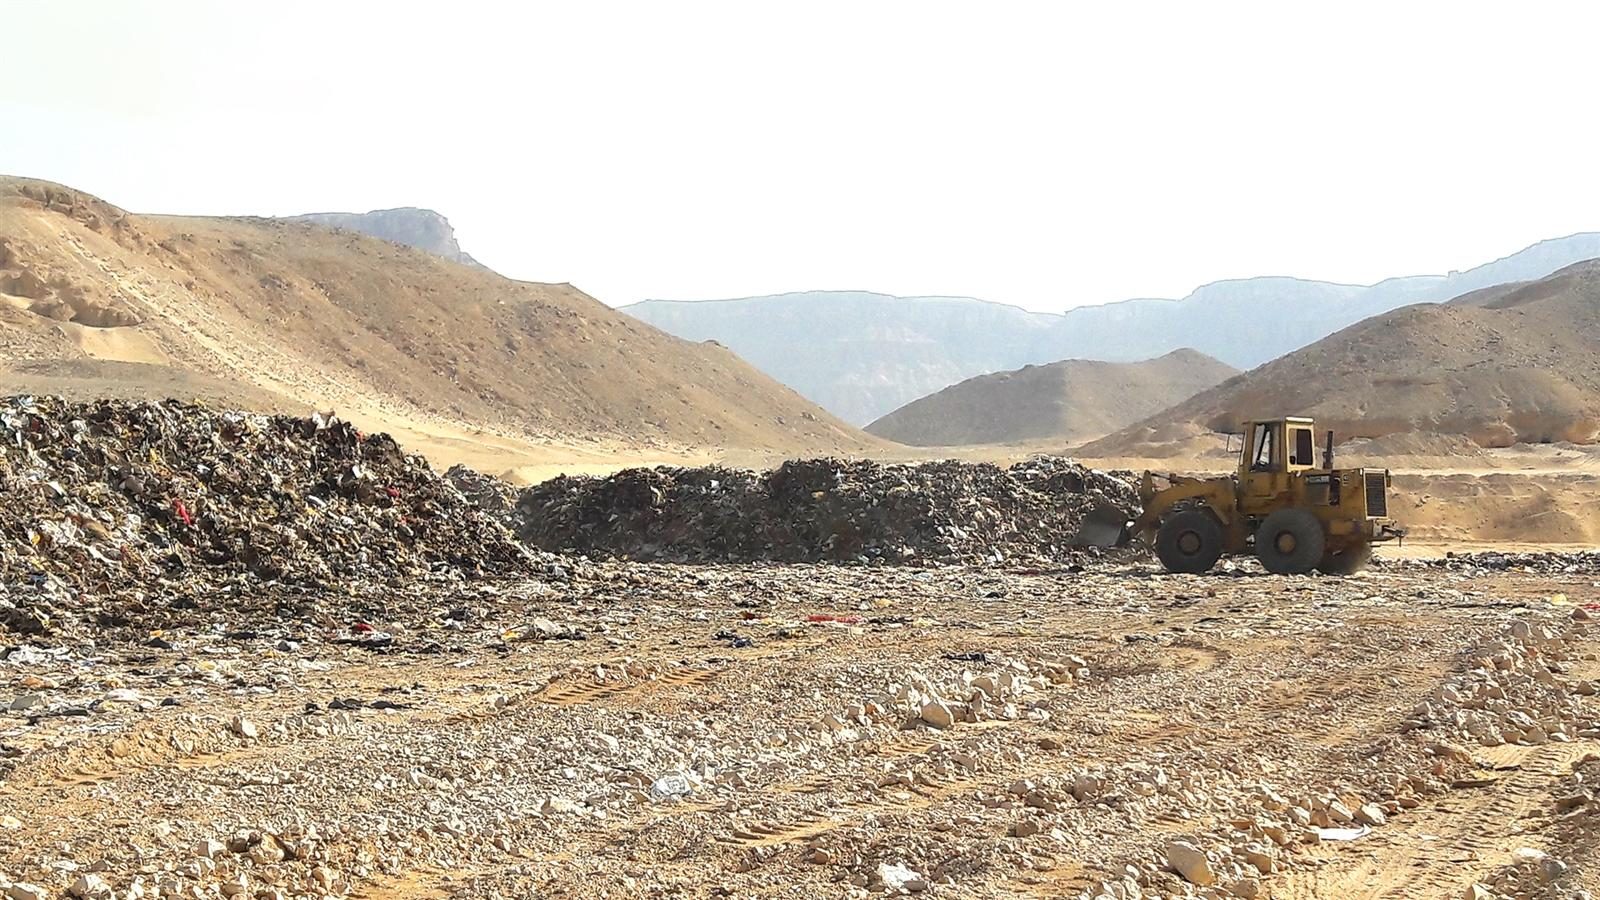 solid_waste_egypt_hi_16 to 9